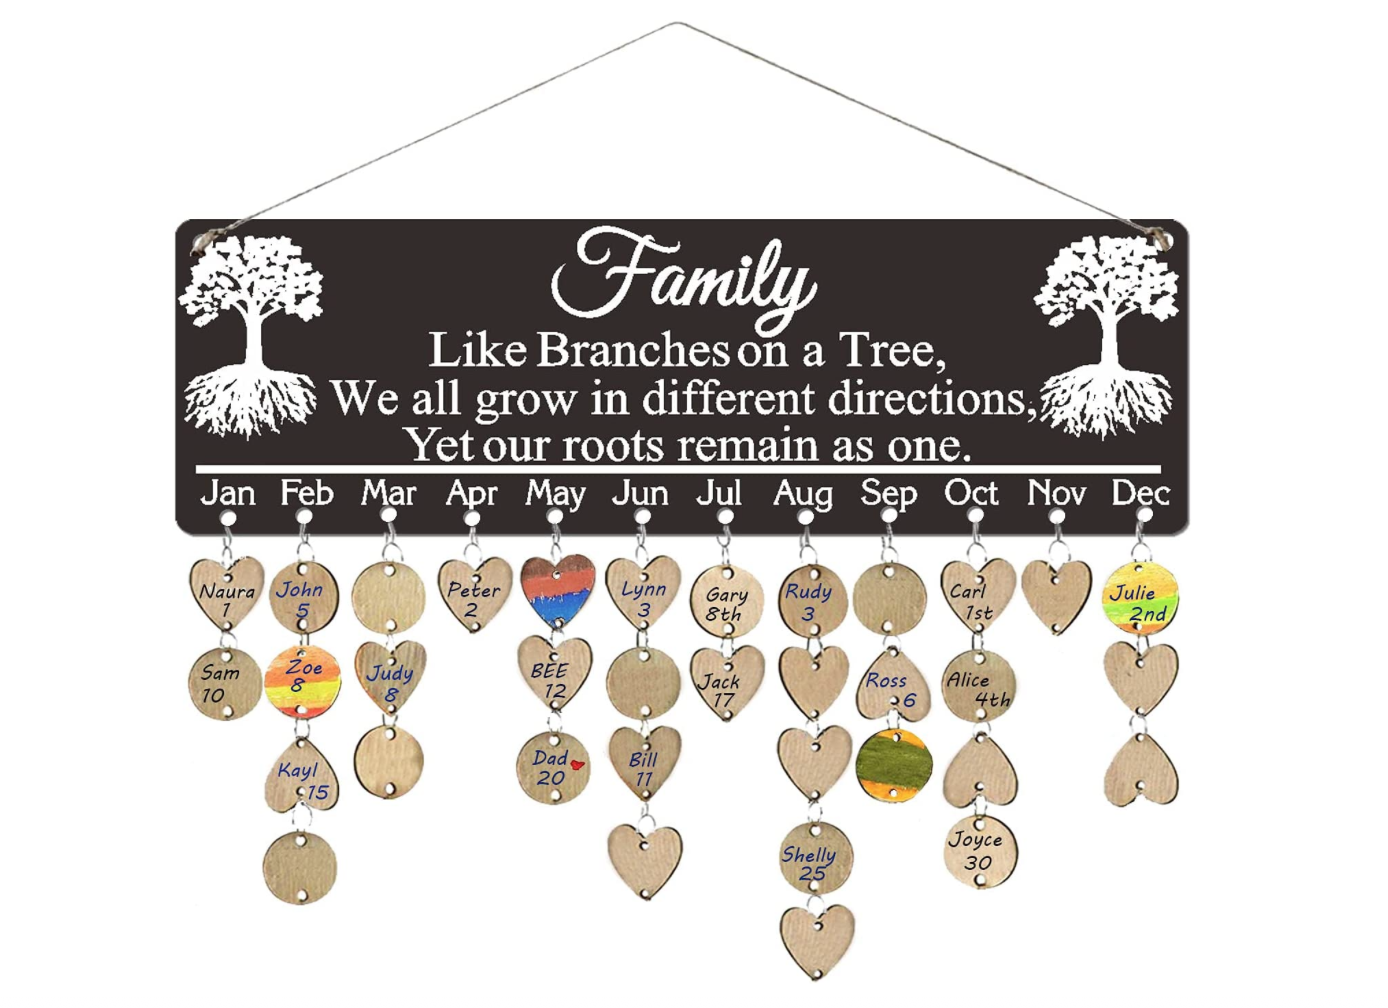 gifts-for-mom-from-daughter-family-celebration-calendar